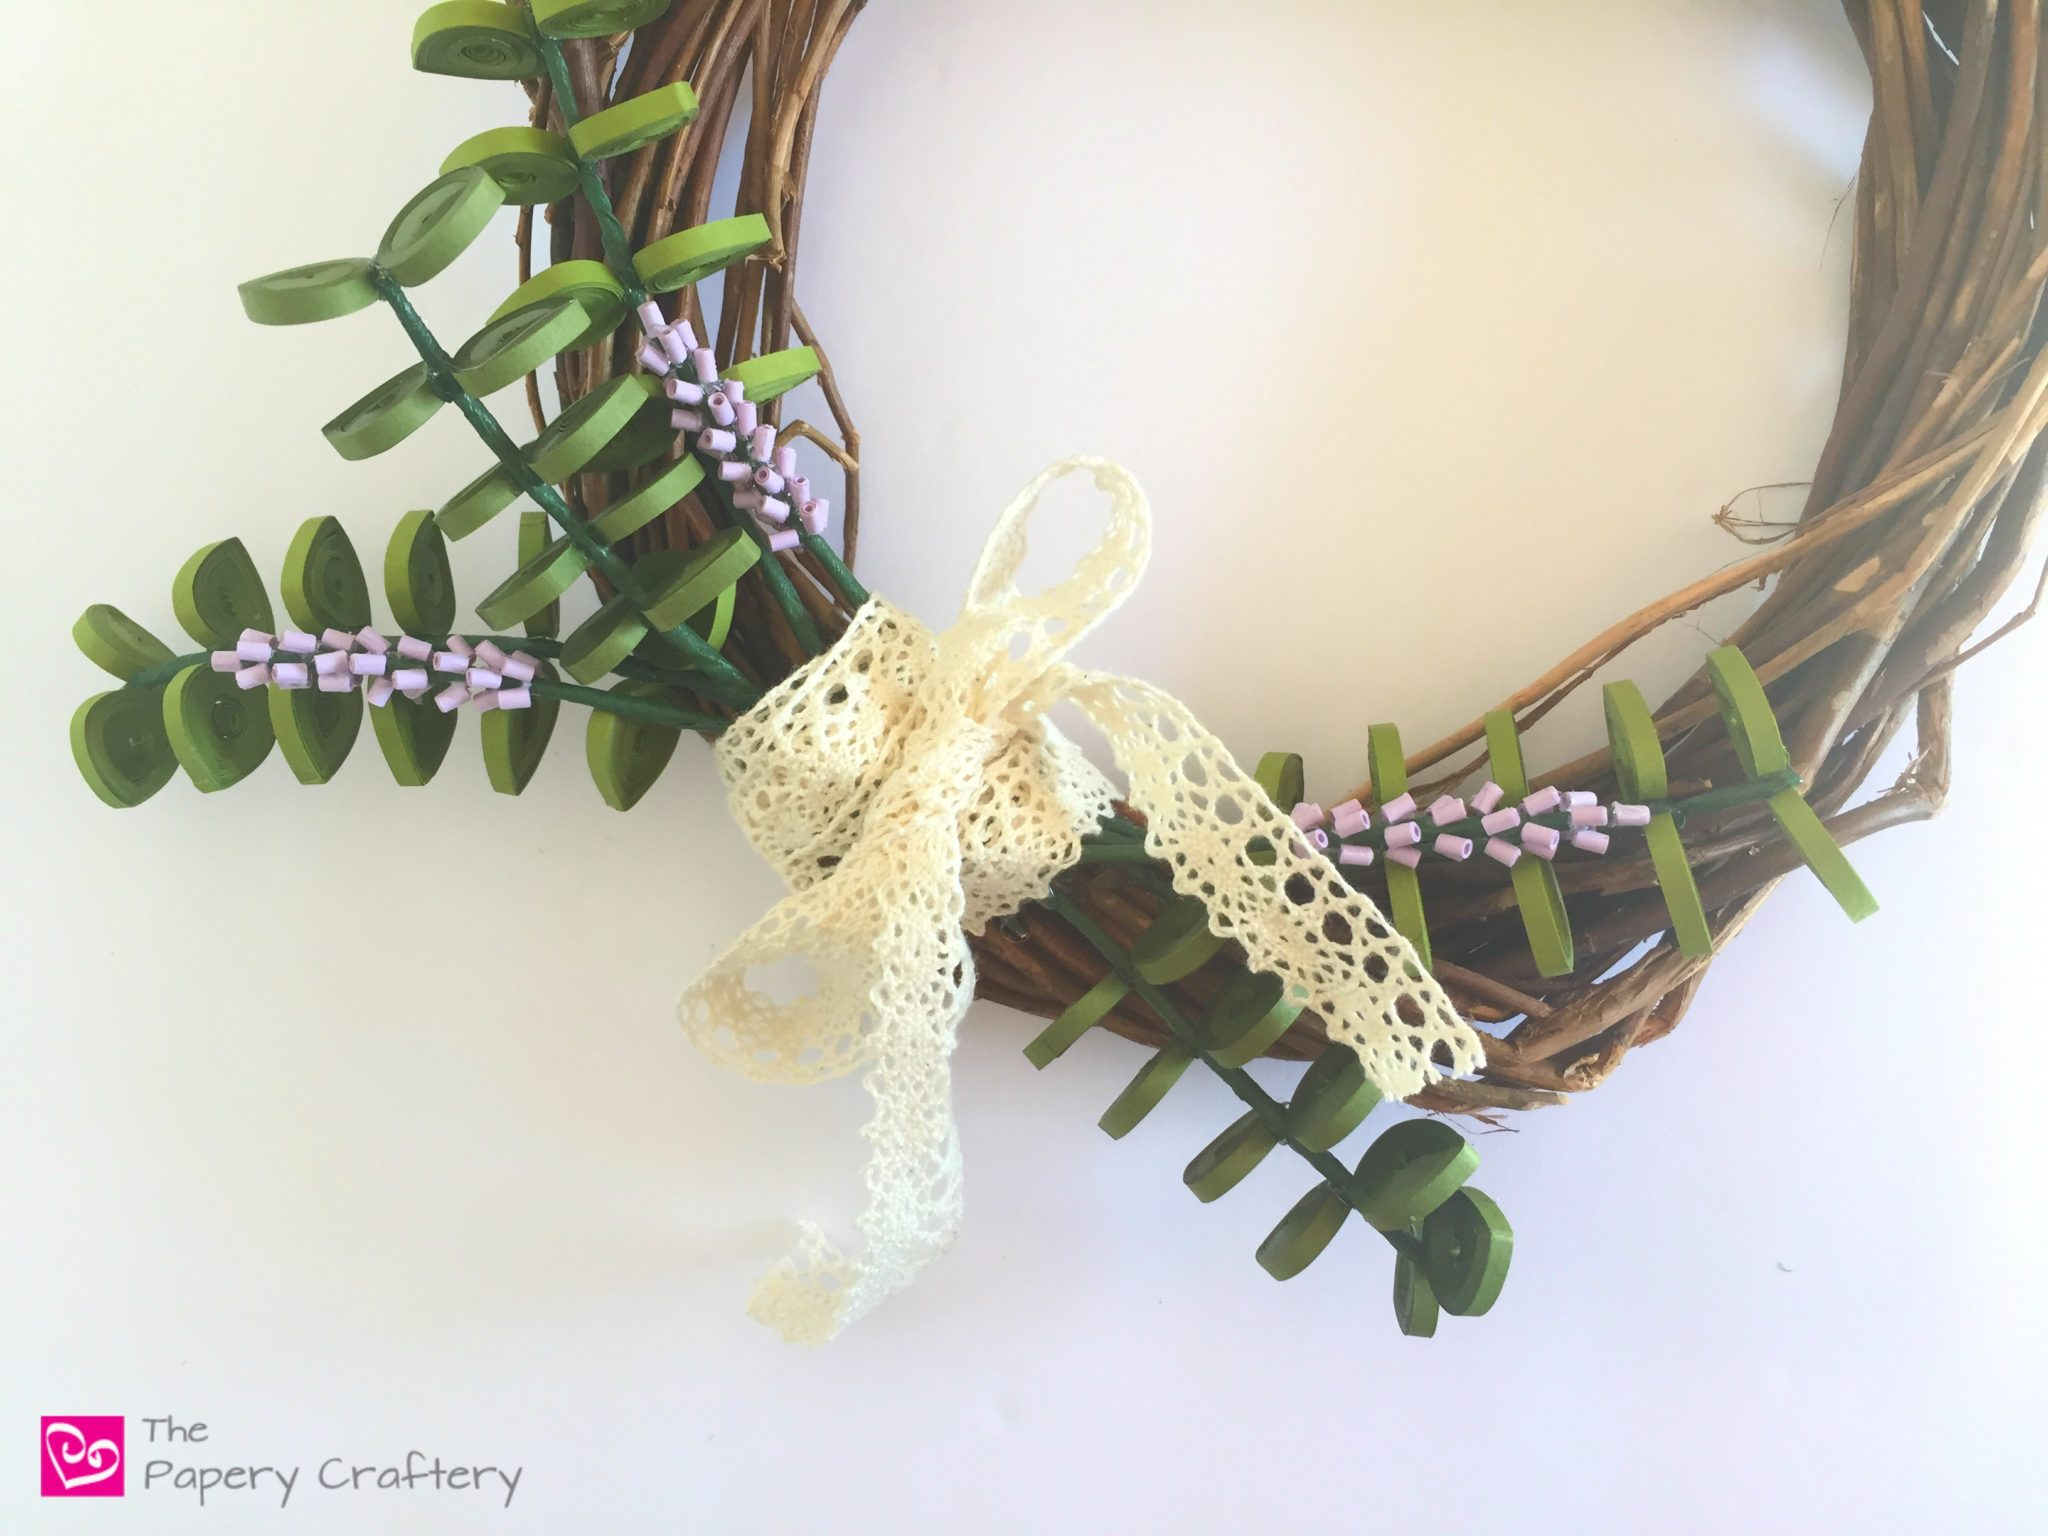 How To Use Quilling To Make A Wreath